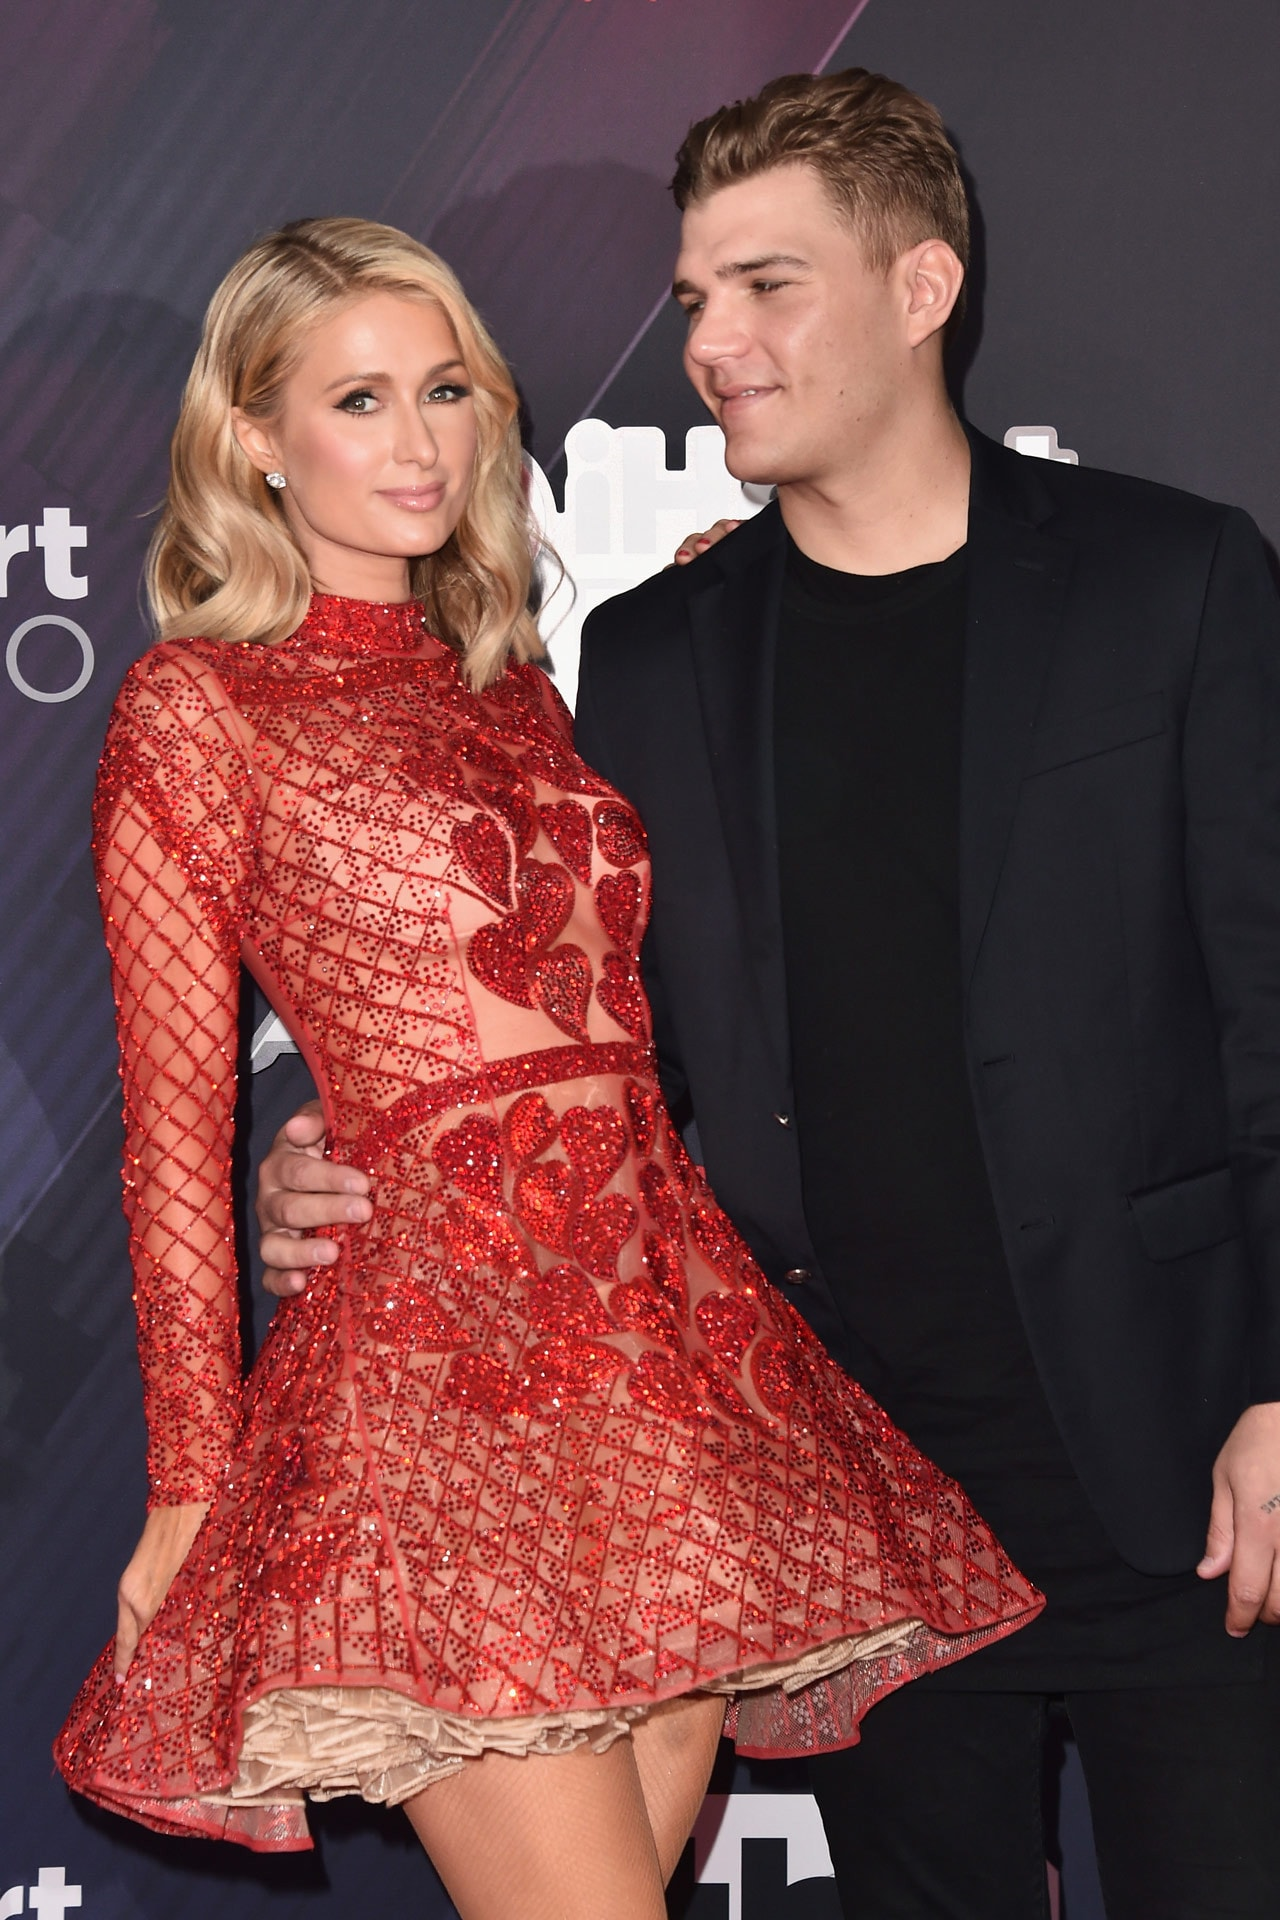 Everything to know about Paris Hilton's wedding to Chris Zylka